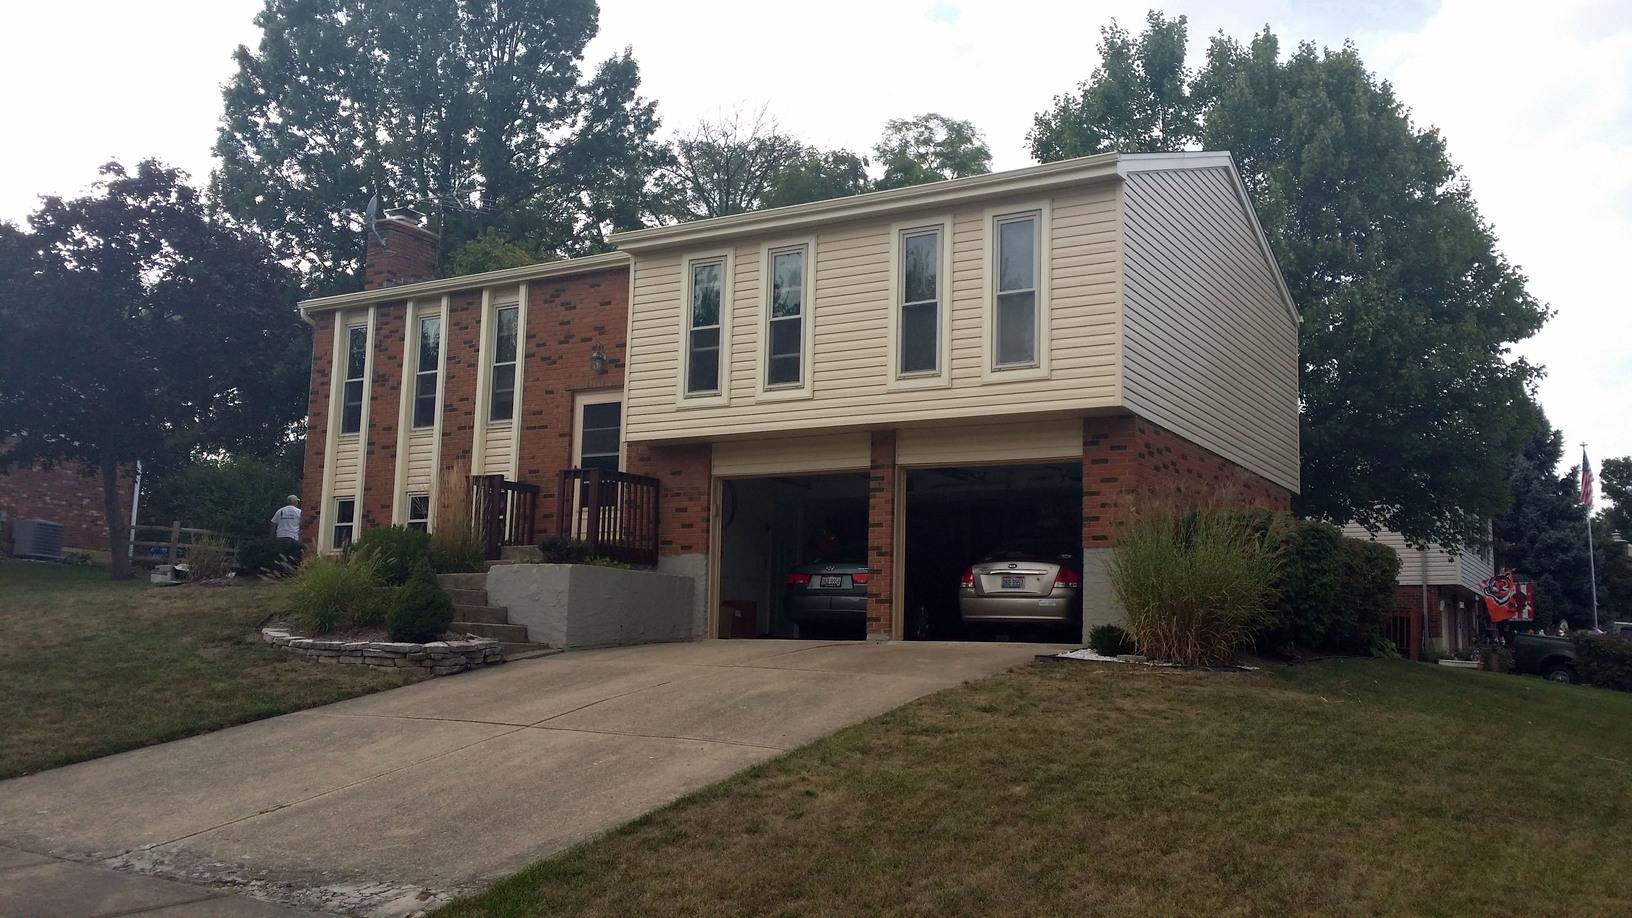 New Vinyl Siding, Roof & Gutters in Cincinnati, OH - After Photo